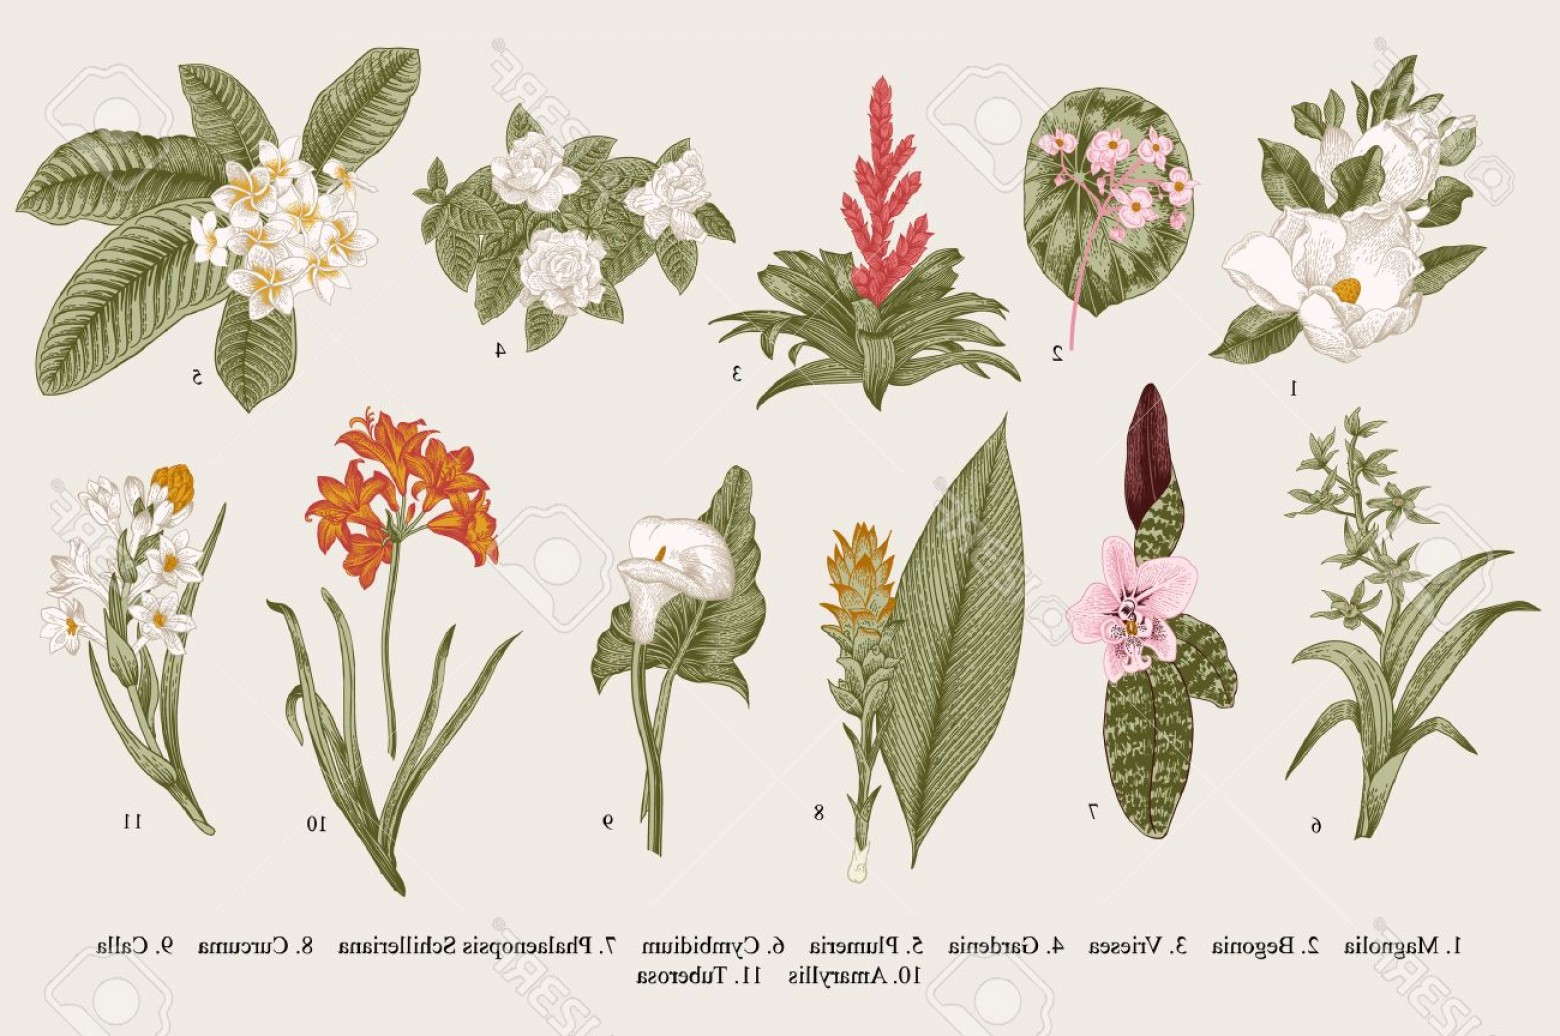 Botanical Flower Vectors: Photostock Vector Exotic Flowers Set Botanical Vector Vintage Illustration Design Elements Colorful